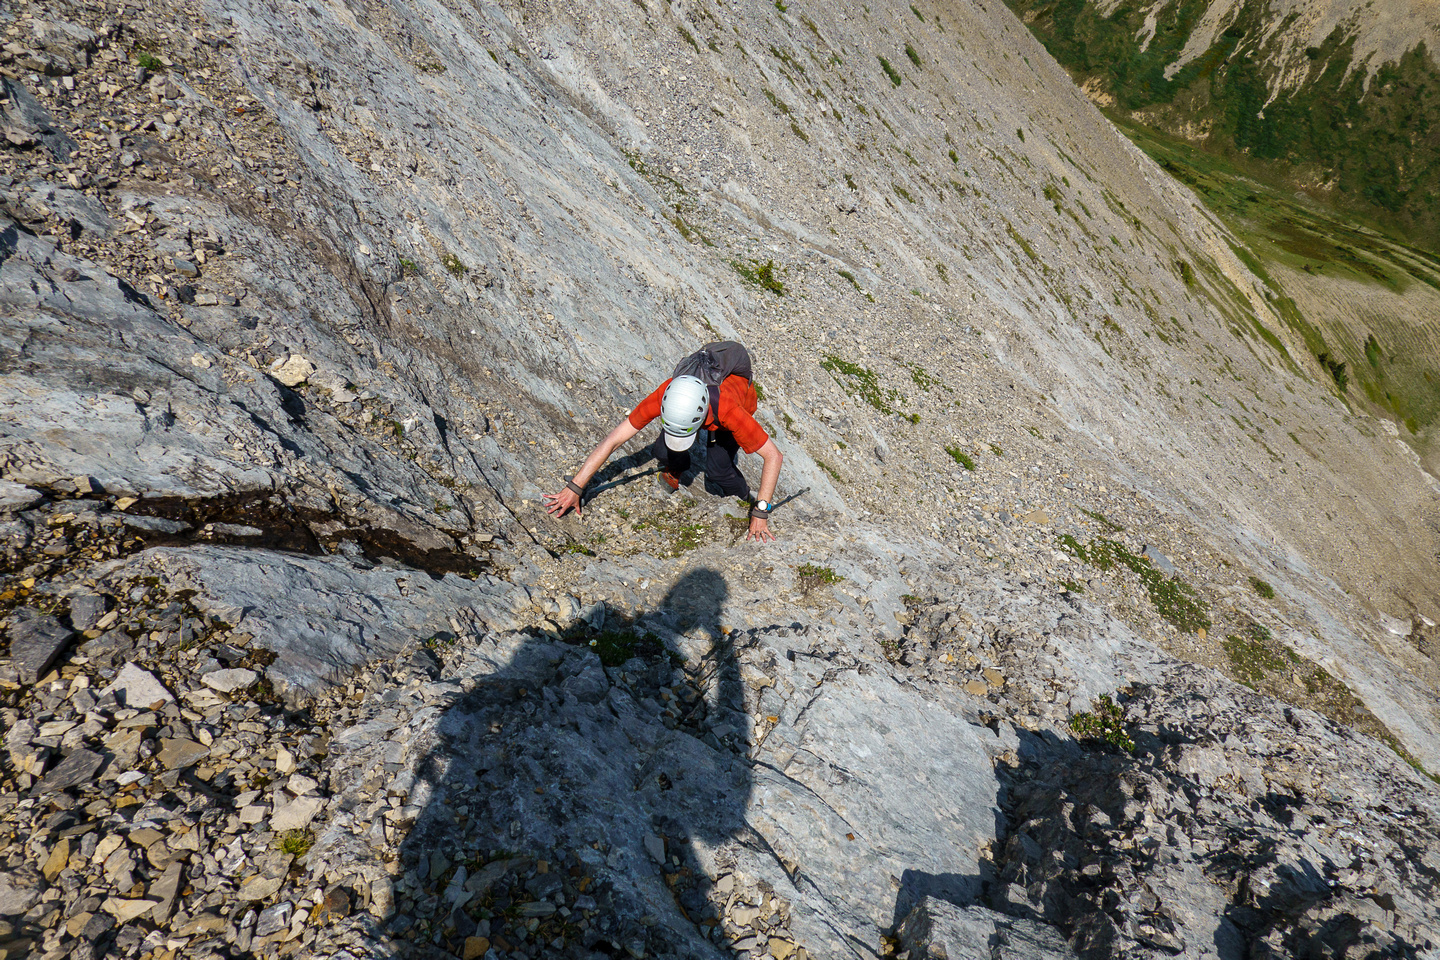 Scrambling up slabs and scree on the east face of Tyrrell.